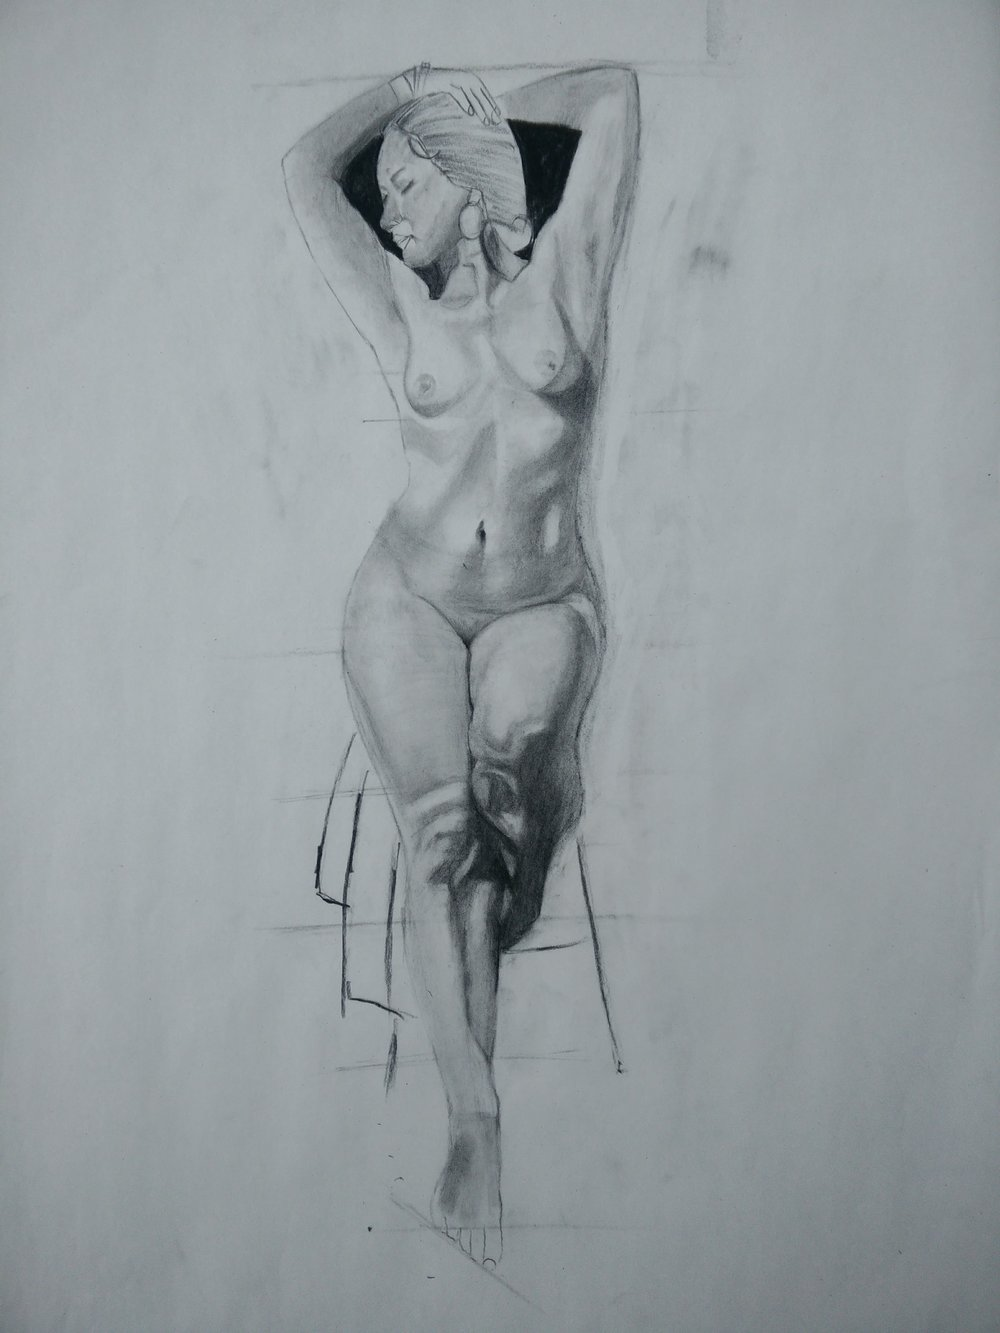 Art of Drawing Figures: - Mondays, 90 minutes sessionExperience drawing the human figure with the guidance of a skilled artist. This course is about drawing lifelike drawing of male and female body with charcoal. In this course you will learn sketching of the nude body structures - both male and female - in a simple and effective way through step by step teaching mechanism. The learners are surely going to enjoy geometry behind the human anatomy, and get benefitted from this course.  The materials used to create the artwork are compressed and vine charcoal, eraser, kneaded eraser, sharpener, Art paper. No live models. Instructor will use digital images and live recoded models for a reference drawings. Level: BeginnerSupplies: All supplies included.